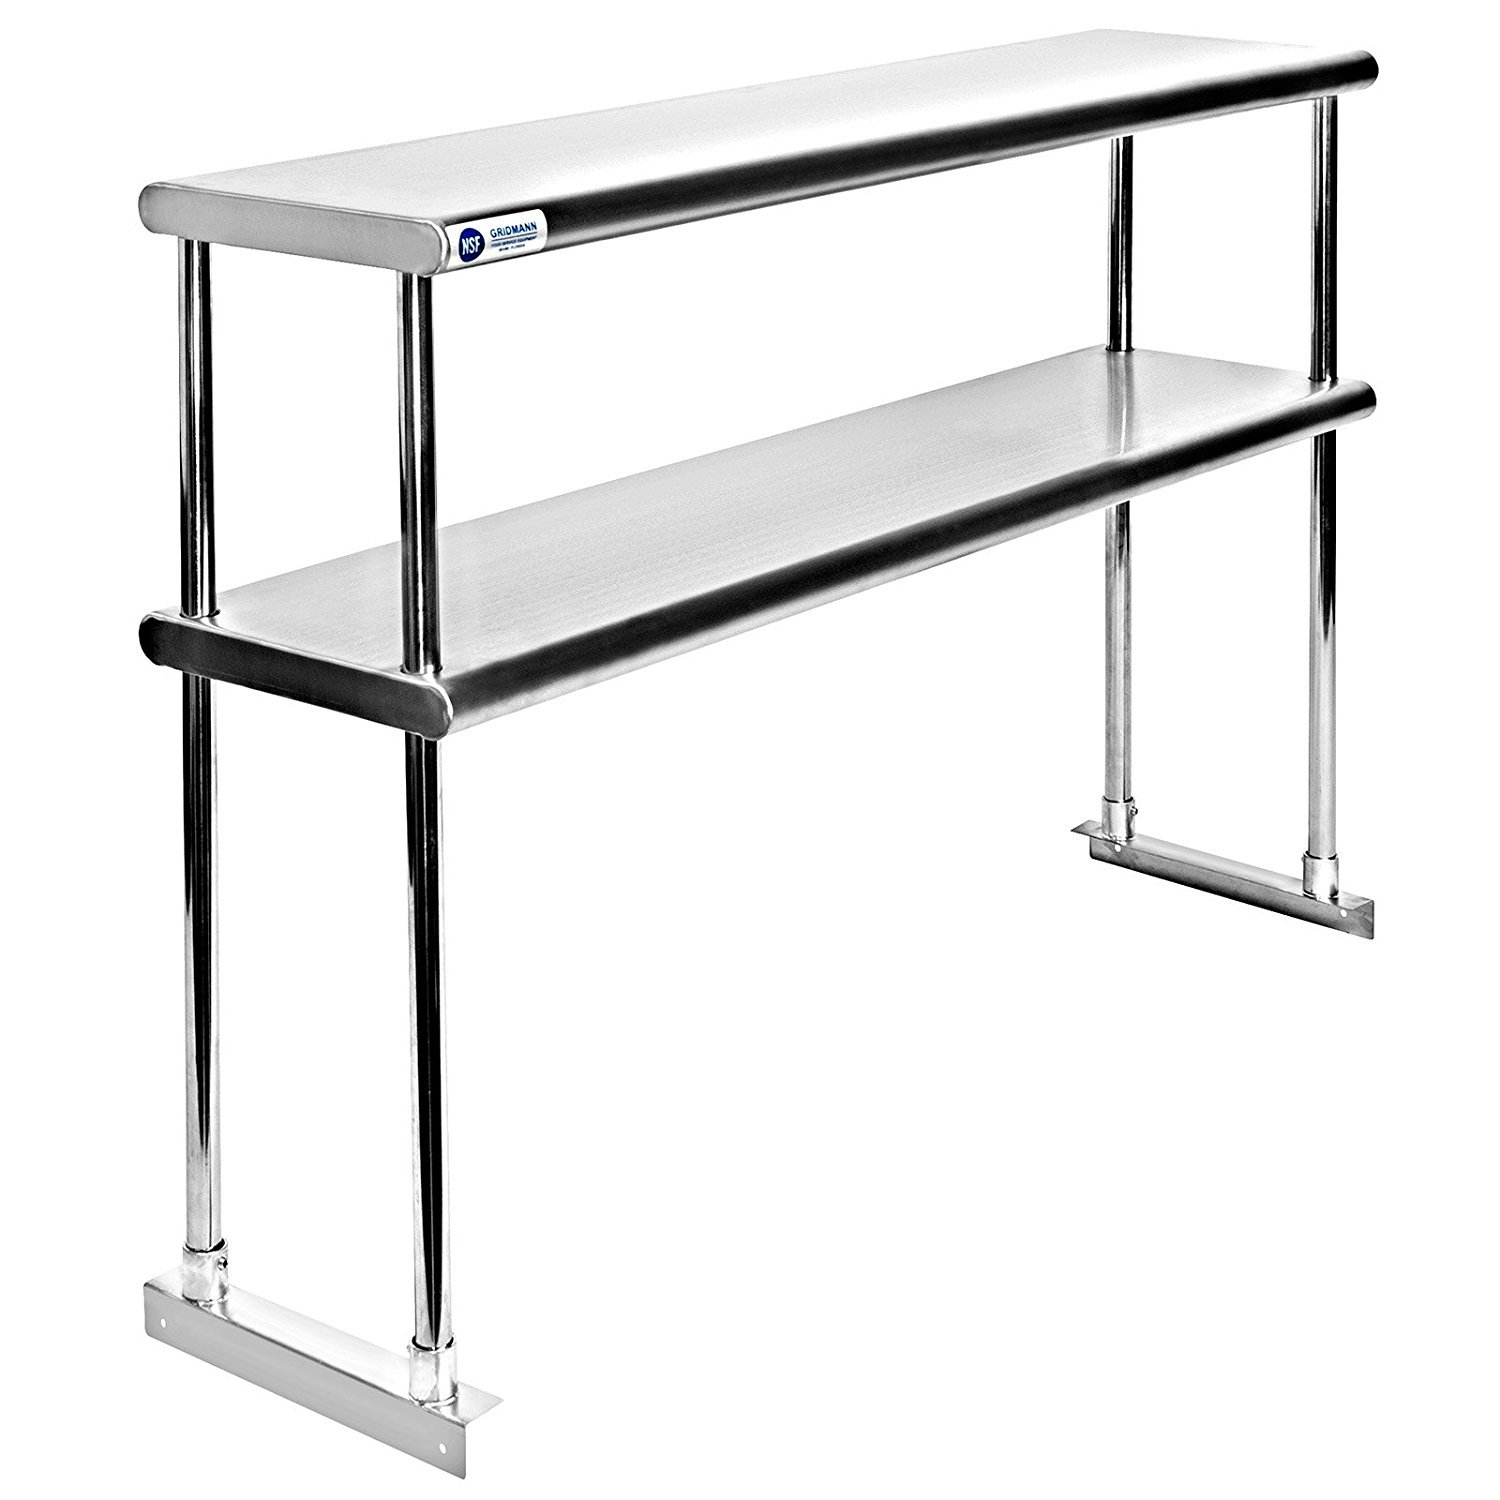 Adjustable Double Overshelf 12 x 24 - Stainless Steel for Work Table